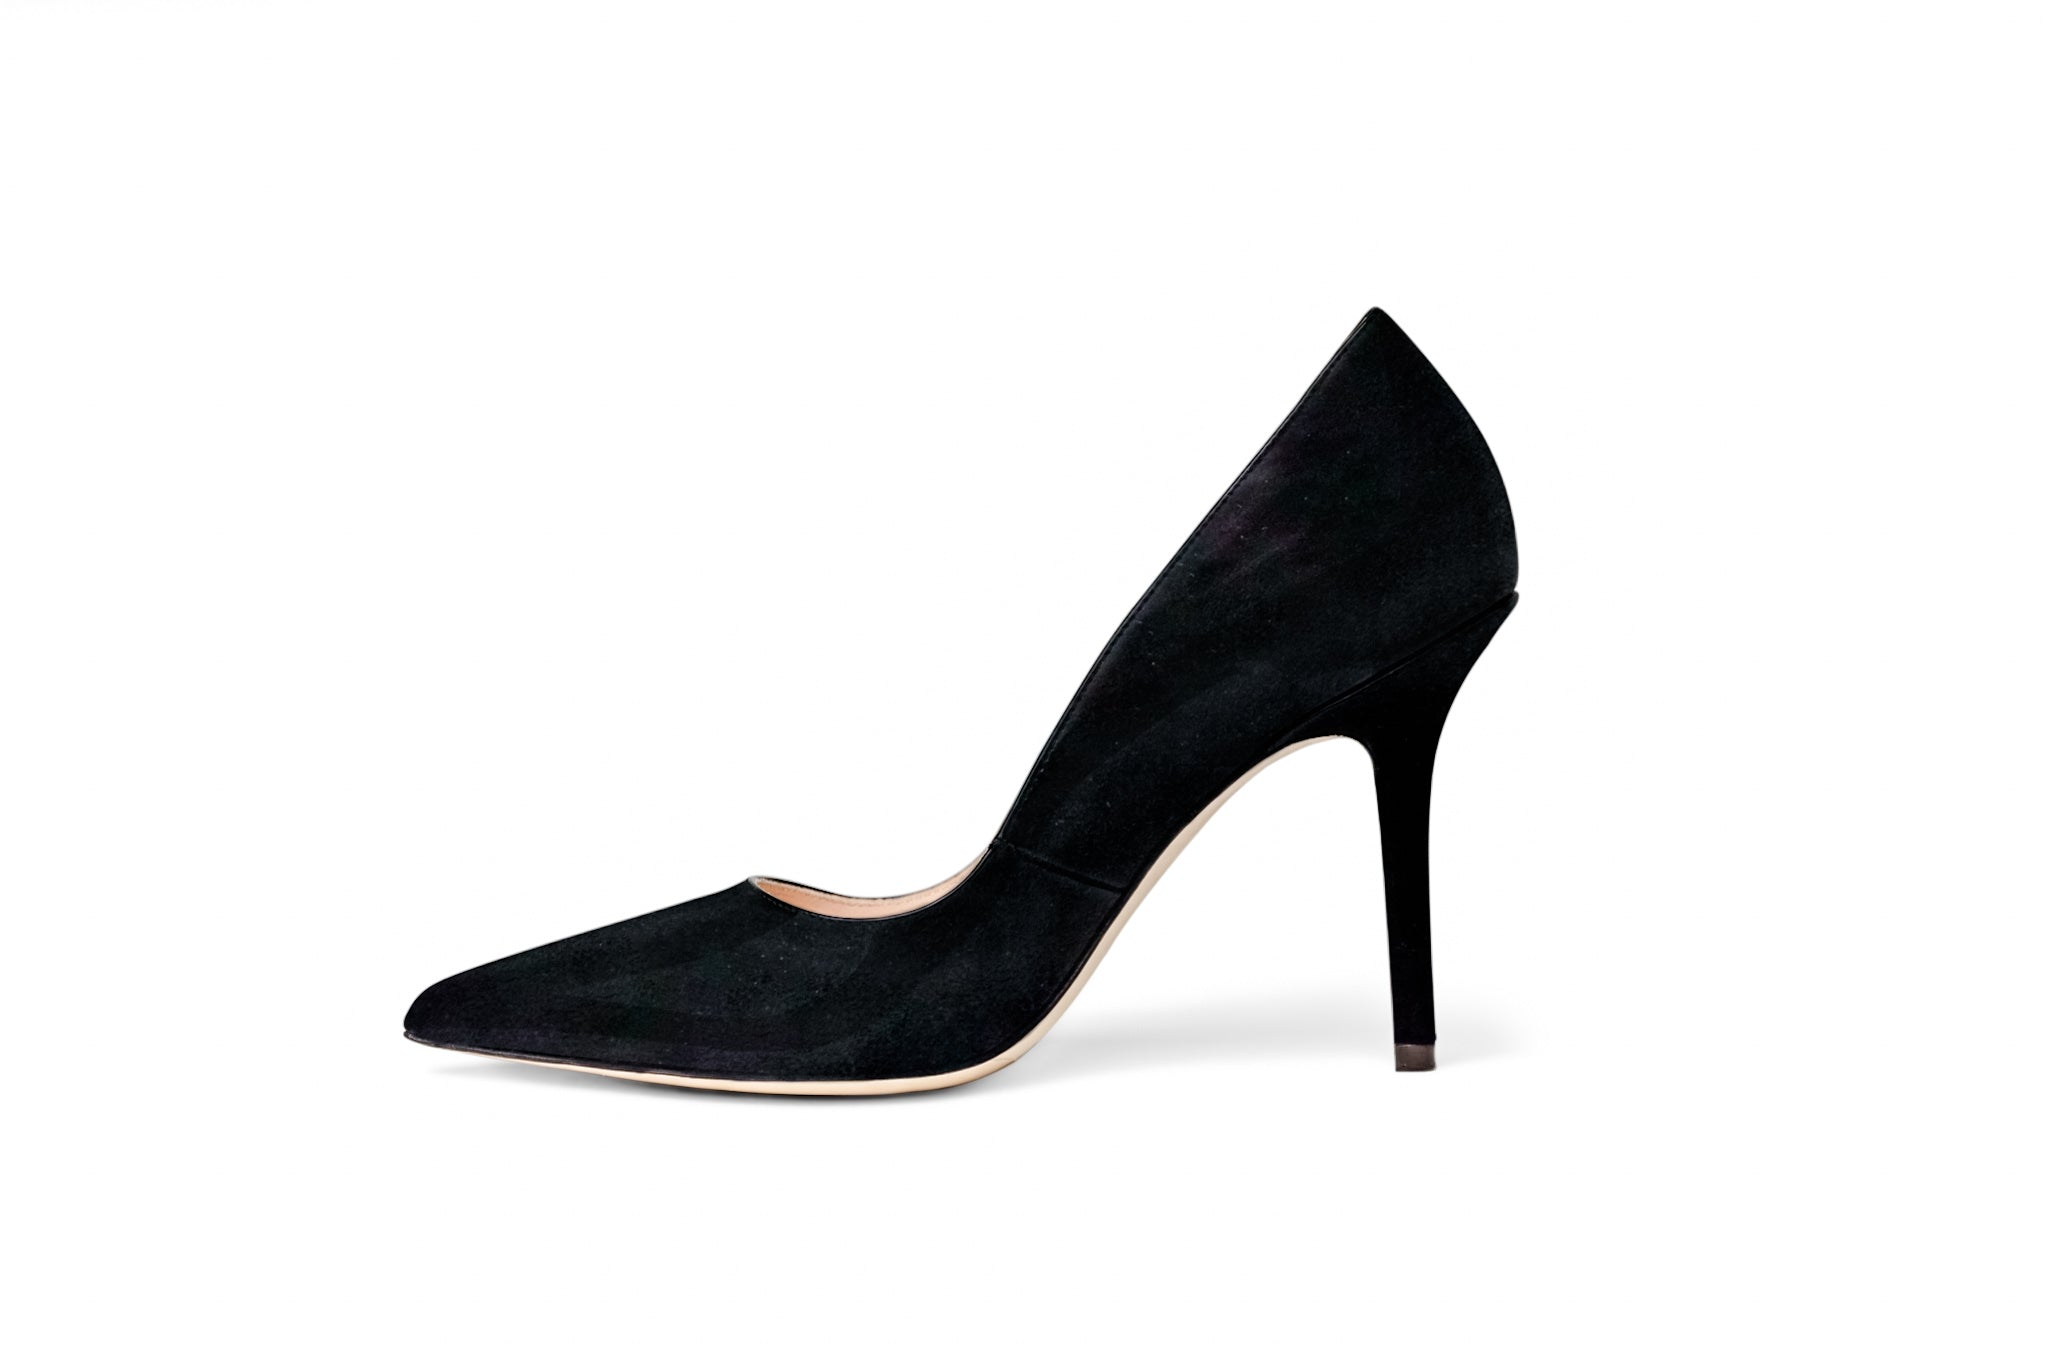 The Black Collection - 95mm Heel in Italian Suede